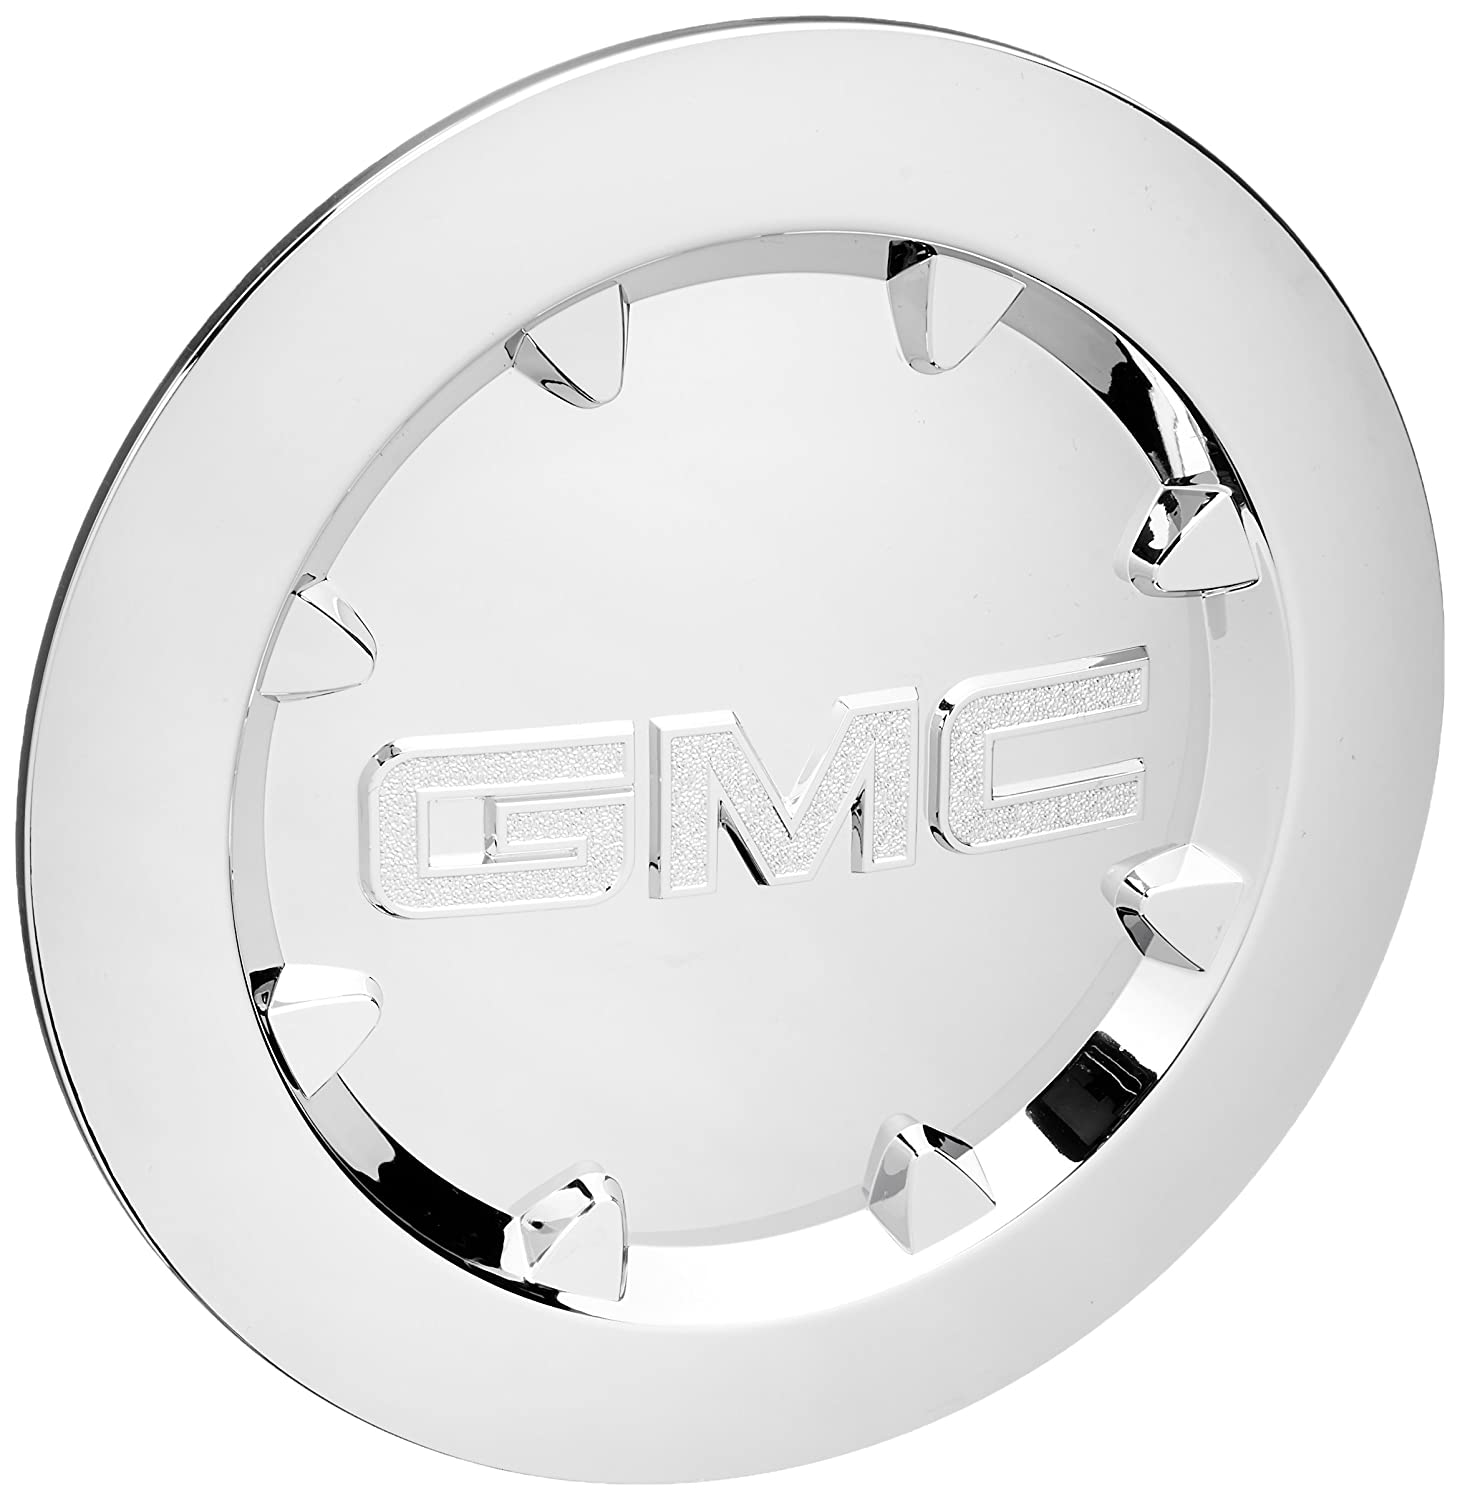 Replacement 4pcs 07-2012 GMC SIERRA 1500 YUKON XL DENALI Chrome Center Cap 20' FBA_321395092701